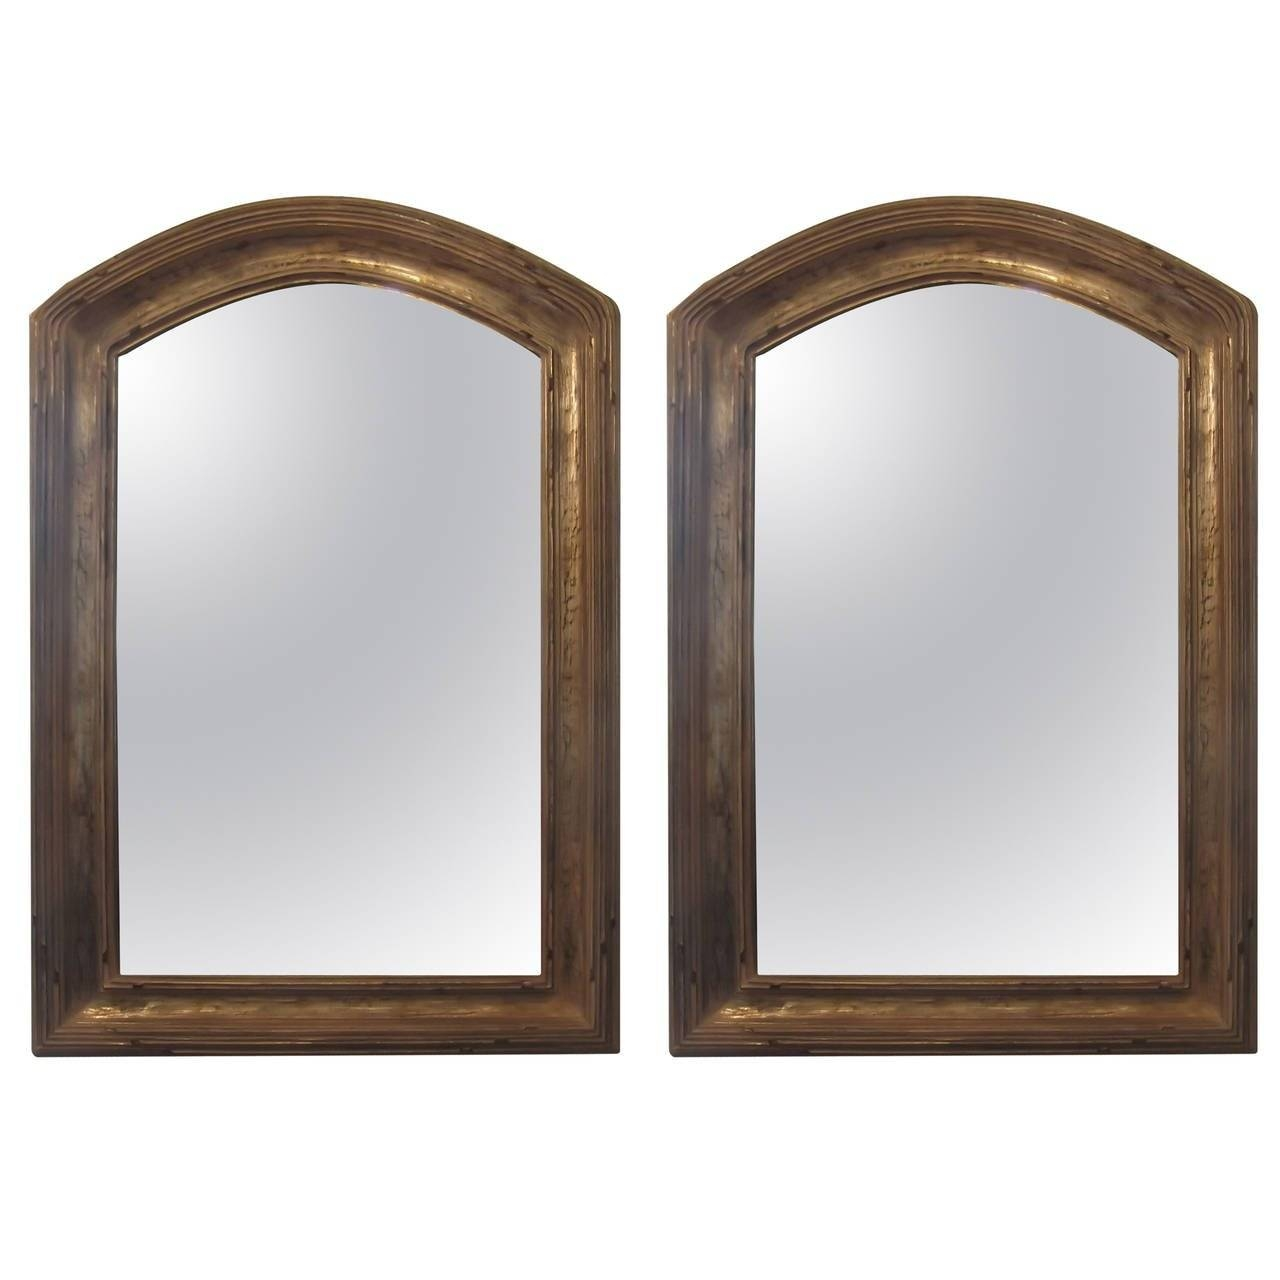 Pair Of Giltwood Arched Top Mirrors At 1stdibs Regarding Curved Top Mirrors (View 3 of 15)